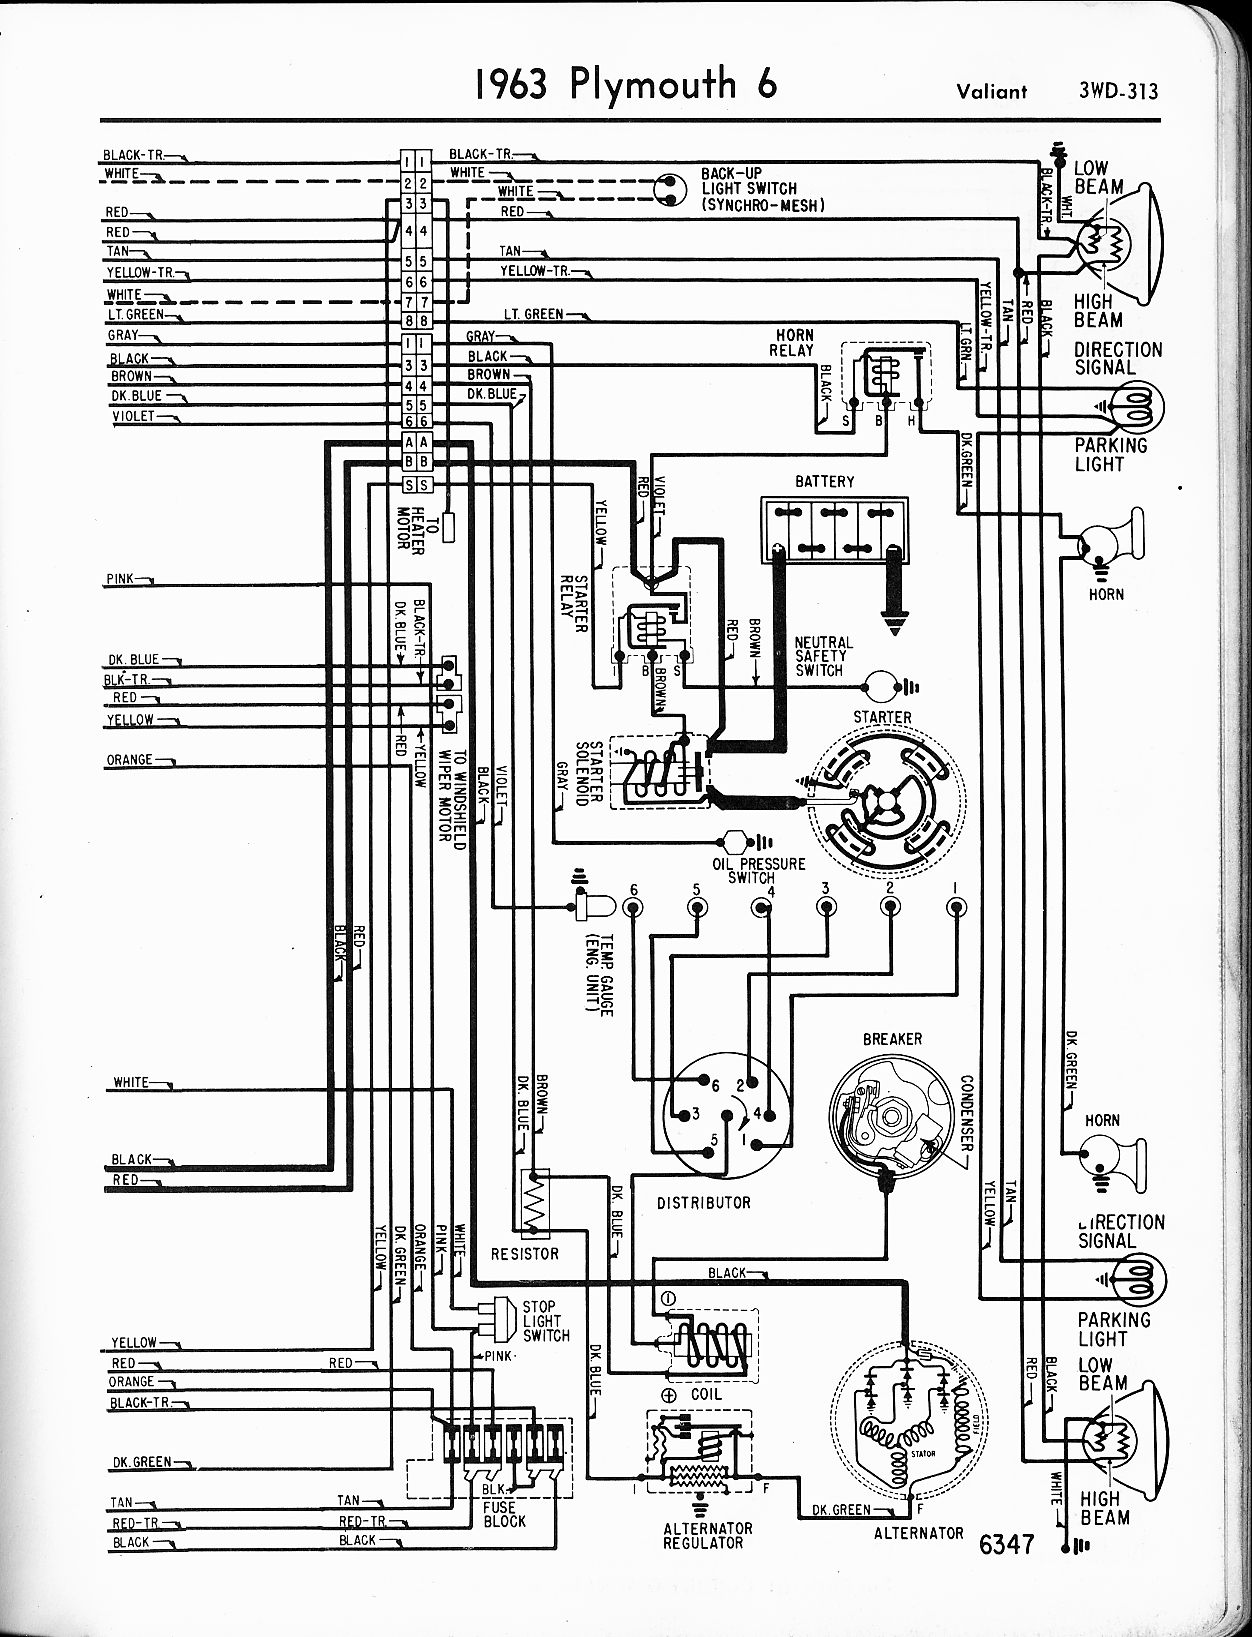 Wondrous 69 Roadrunner Wiring Diagram Dashboard Light General Wiring Wiring 101 Photwellnesstrialsorg